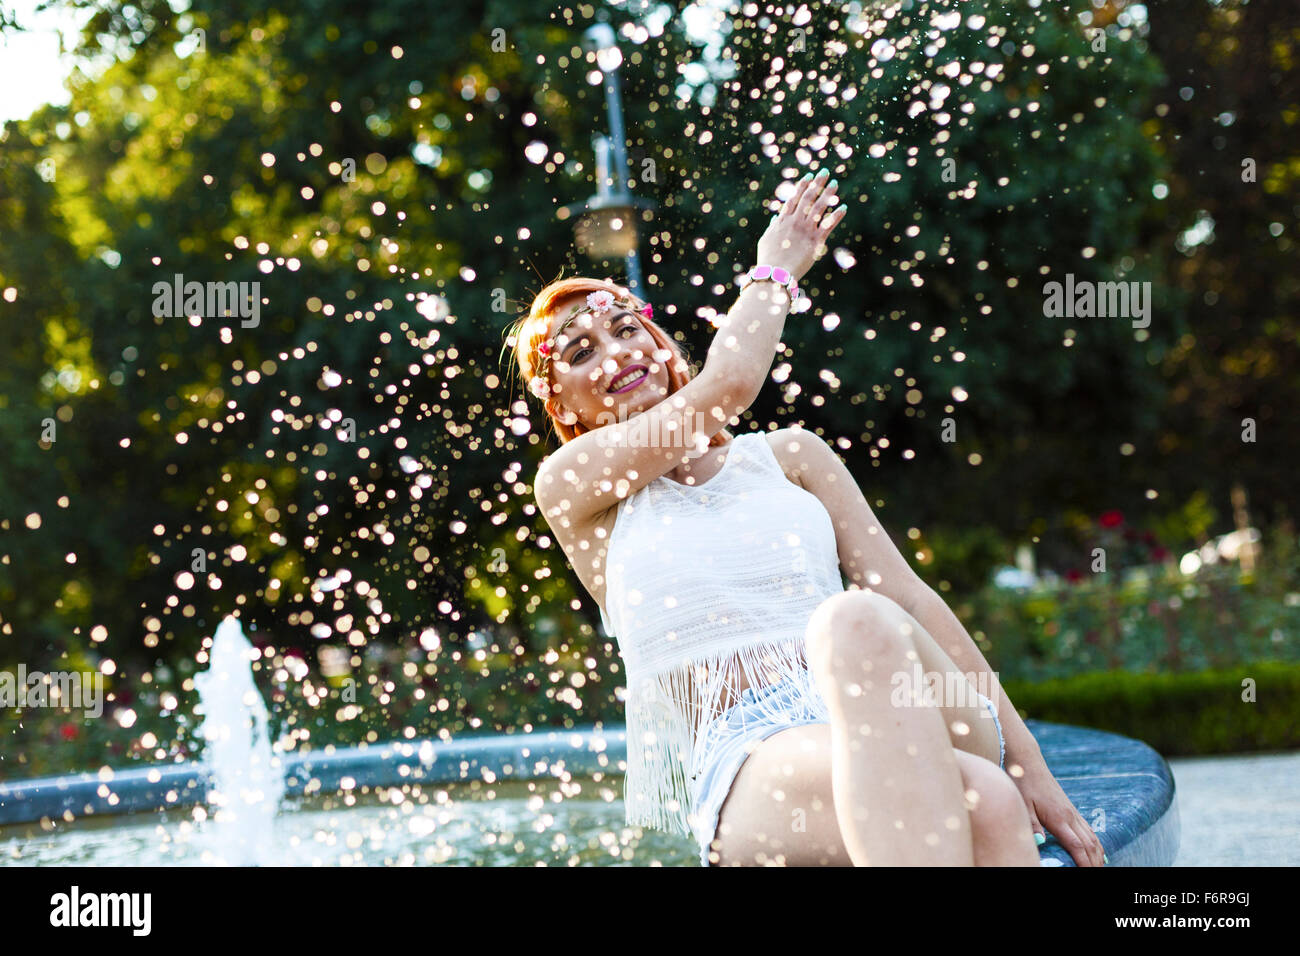 Young woman in hippie style fashion splashing water - Stock Image